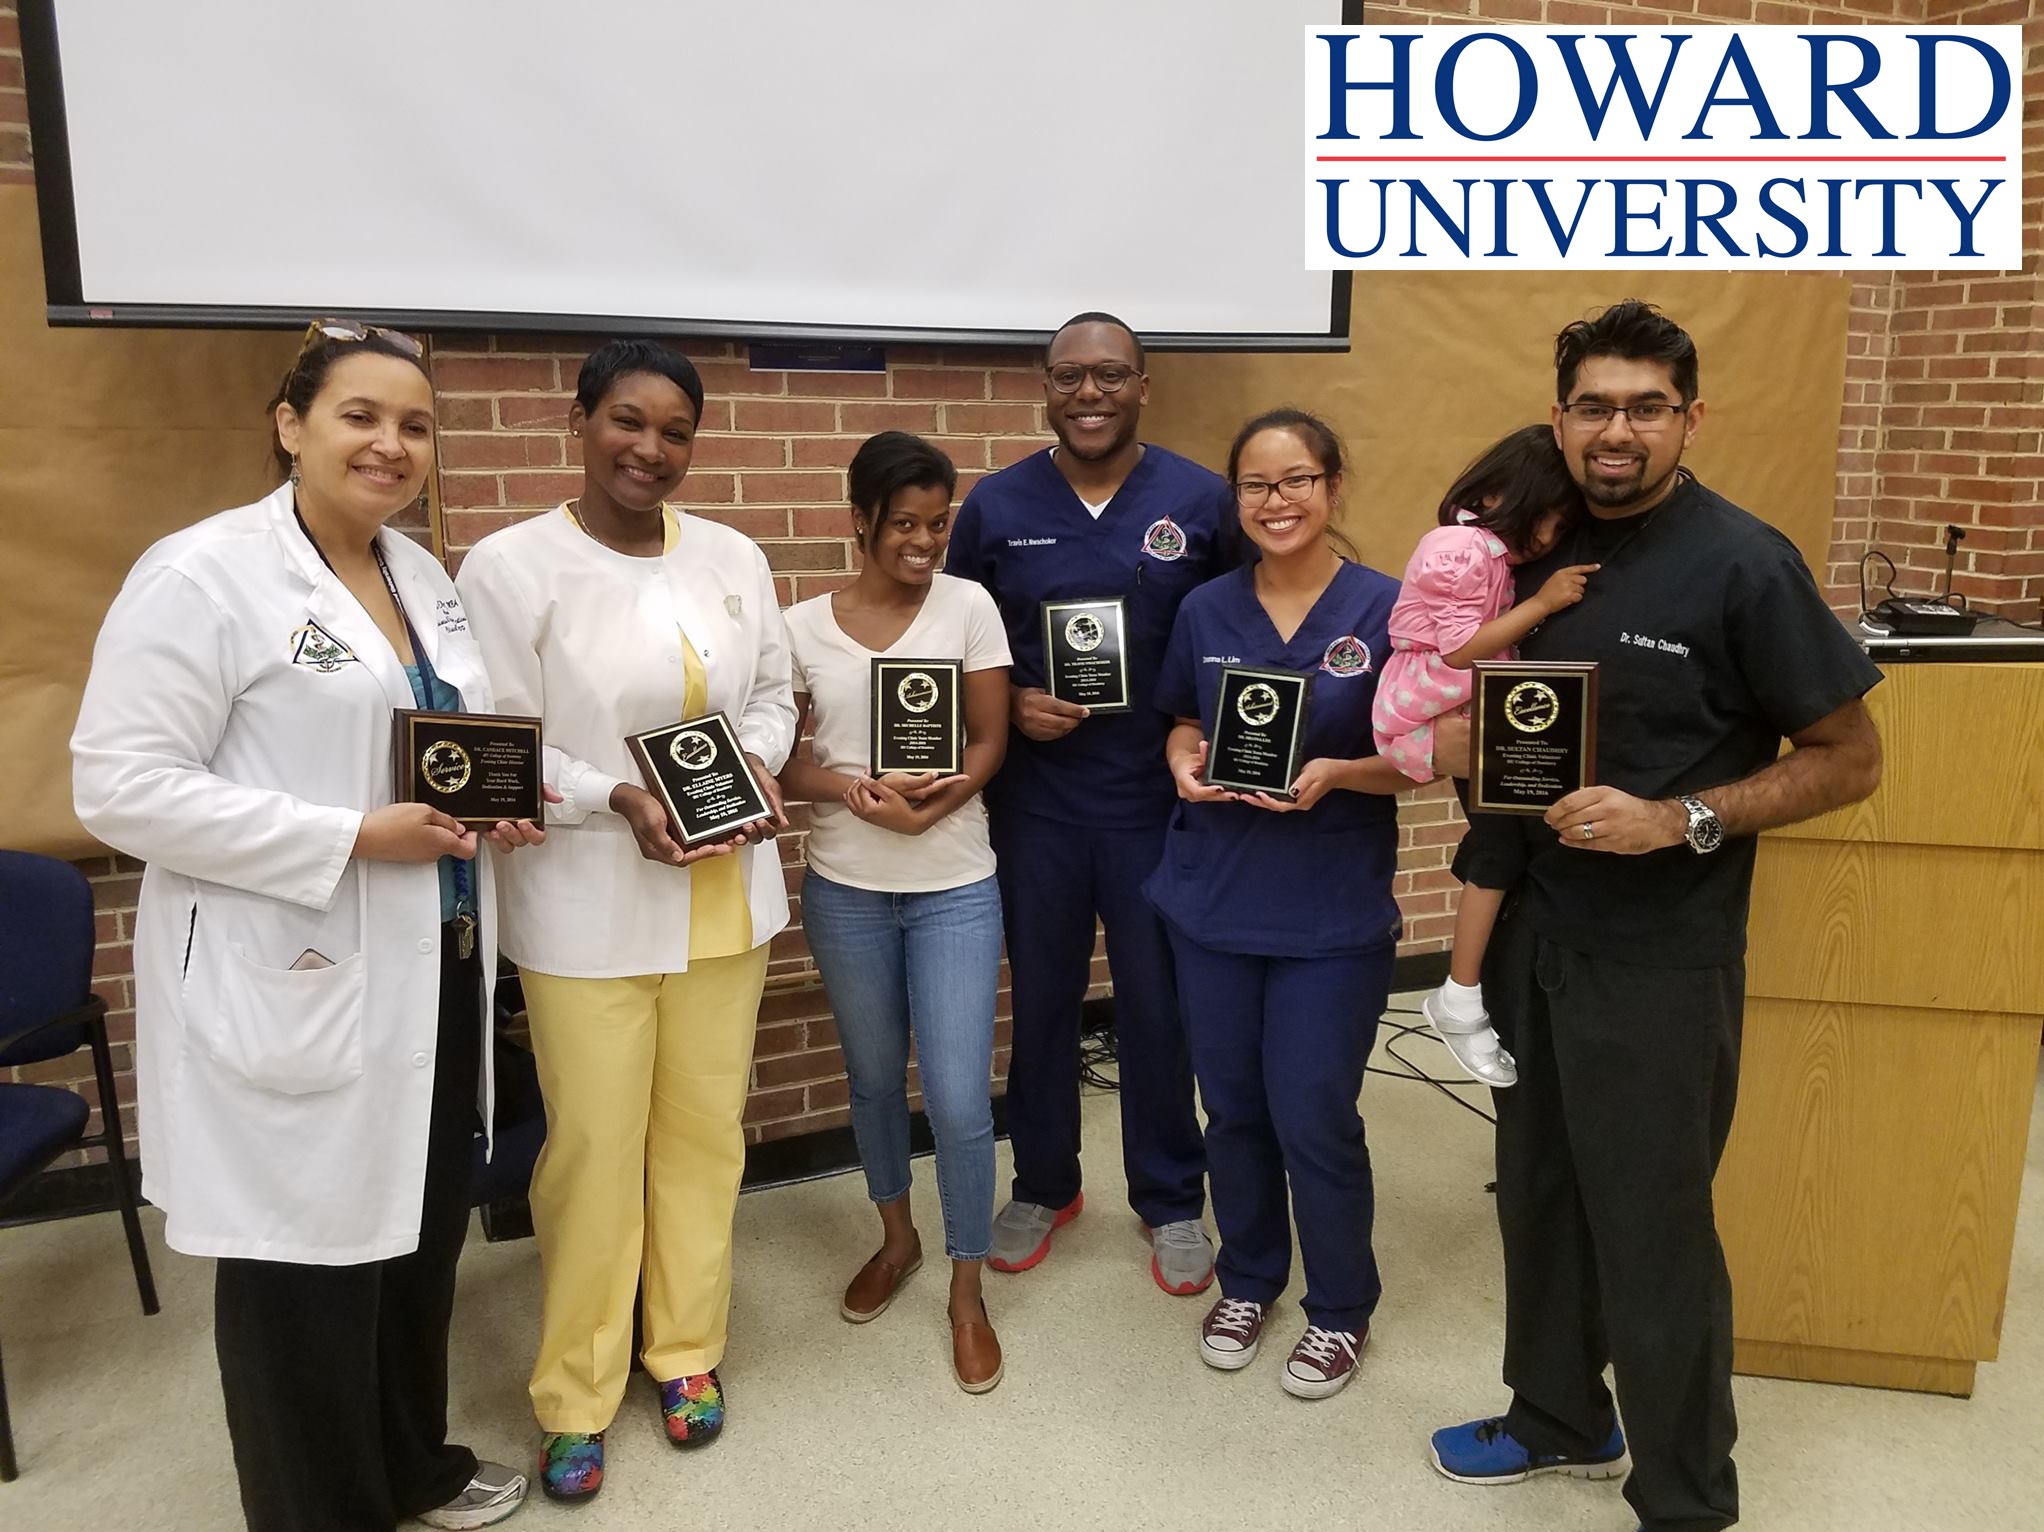 Dr. Chaudhry receives a teaching distinction at Howard University College of Dentistry alongside students and fellow faculty members.